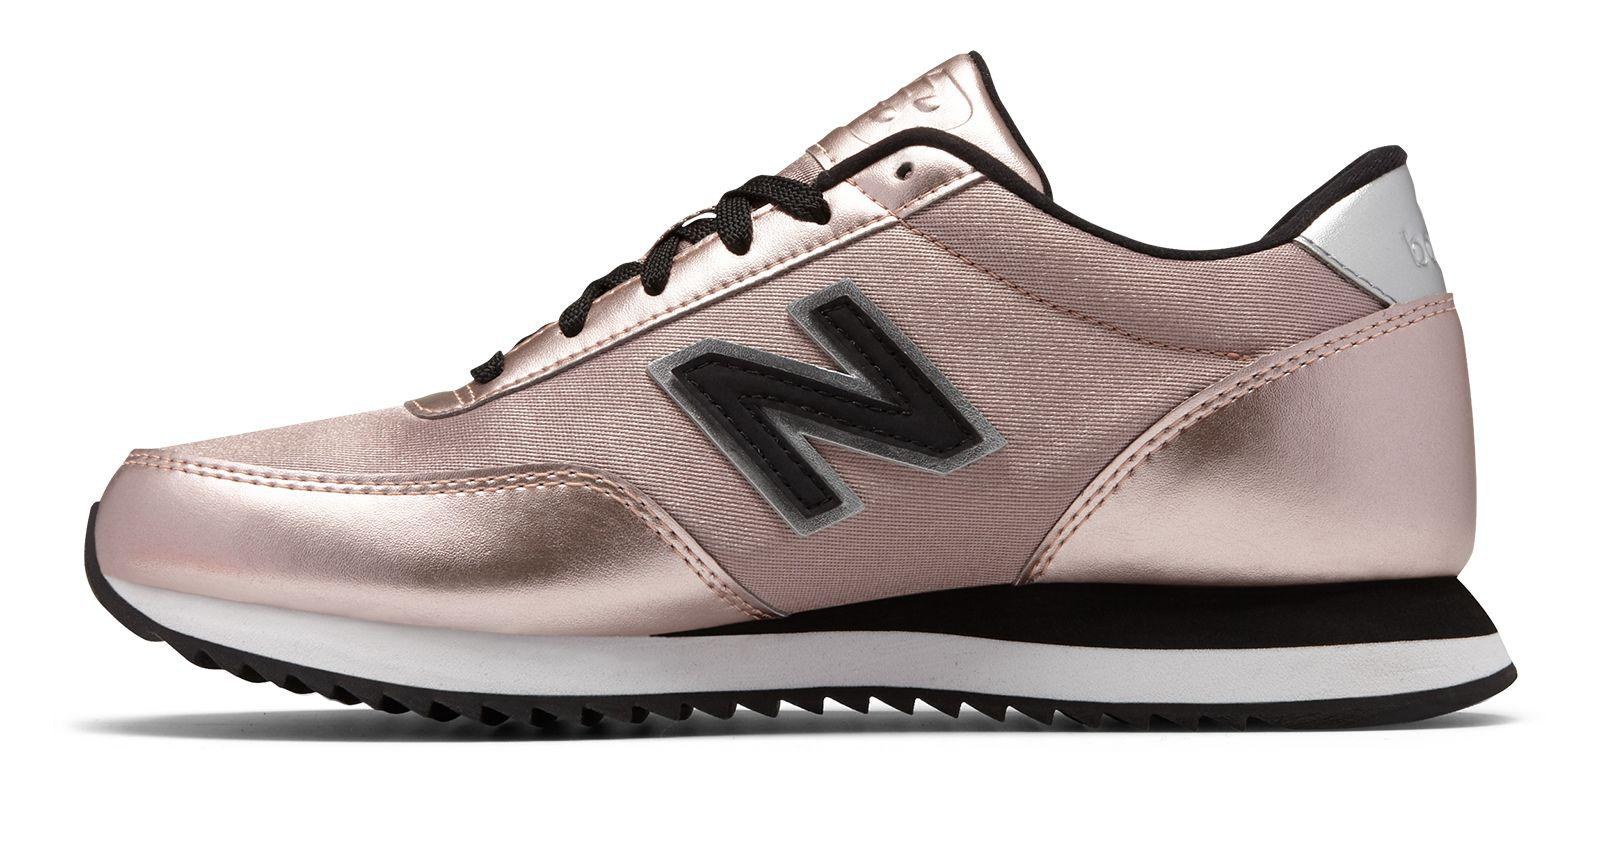 Details about New Balance Women 501 (Ripple Sole) wz501sfg